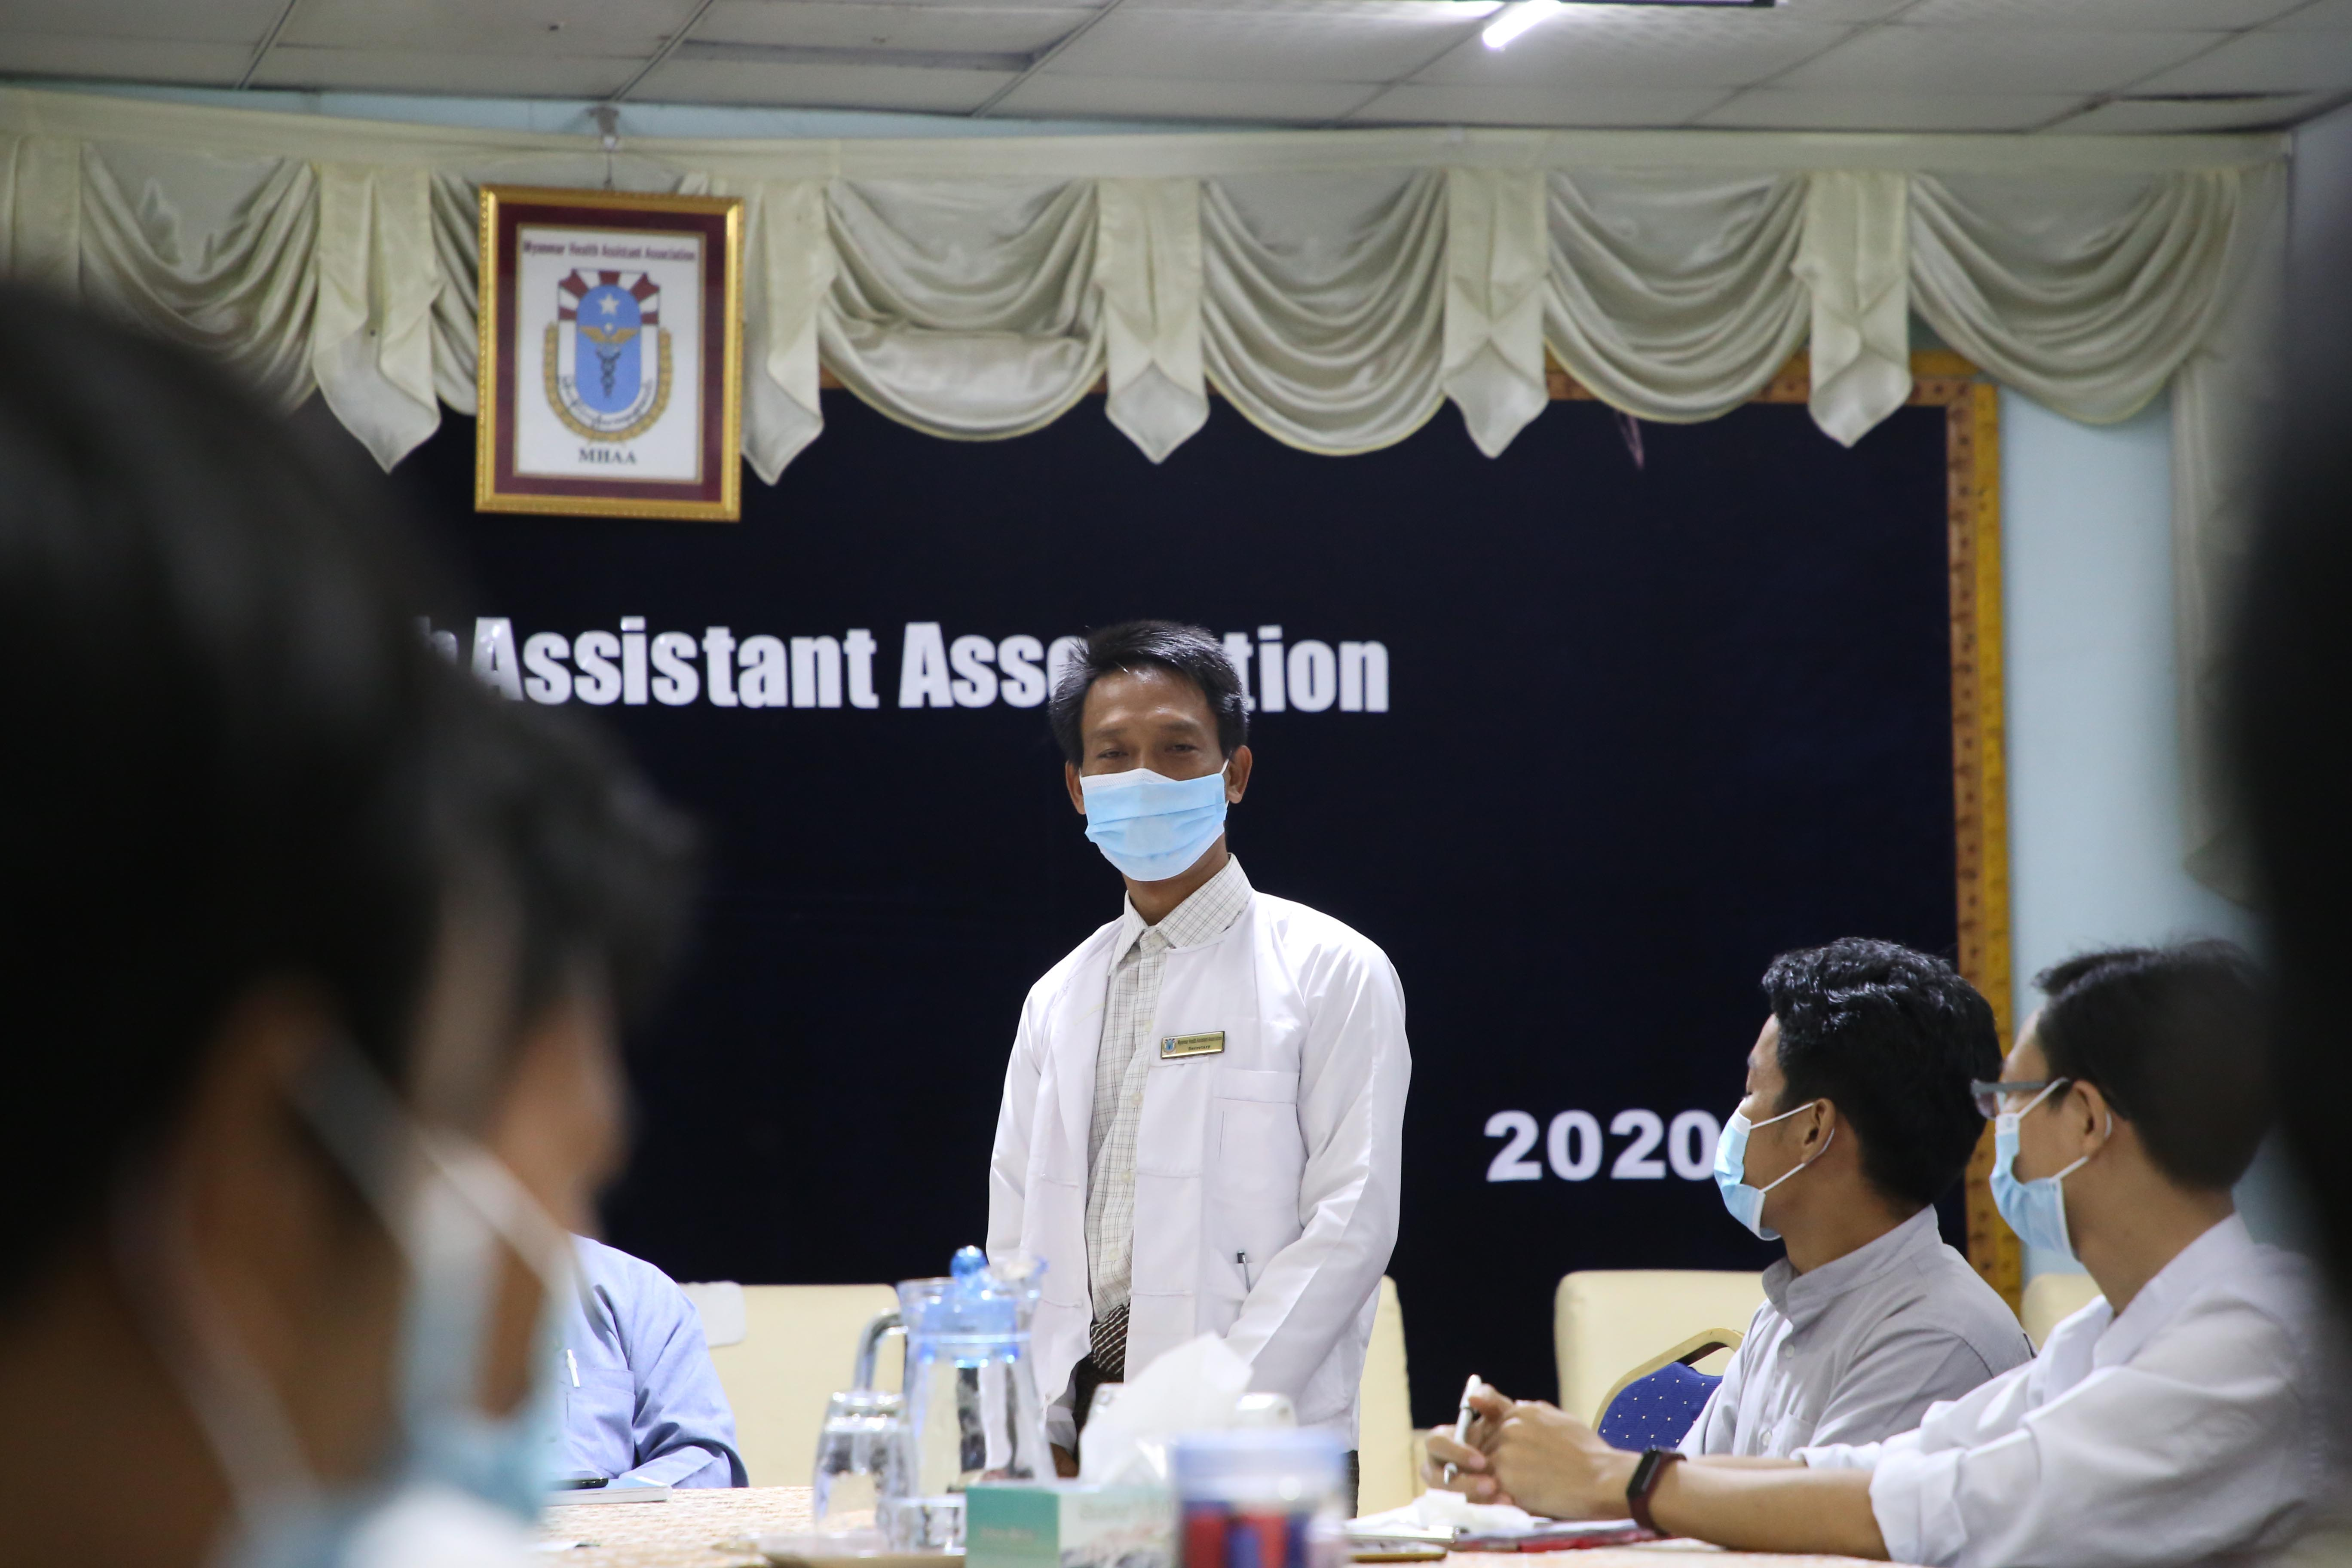 Myanmar Health Assistant Association